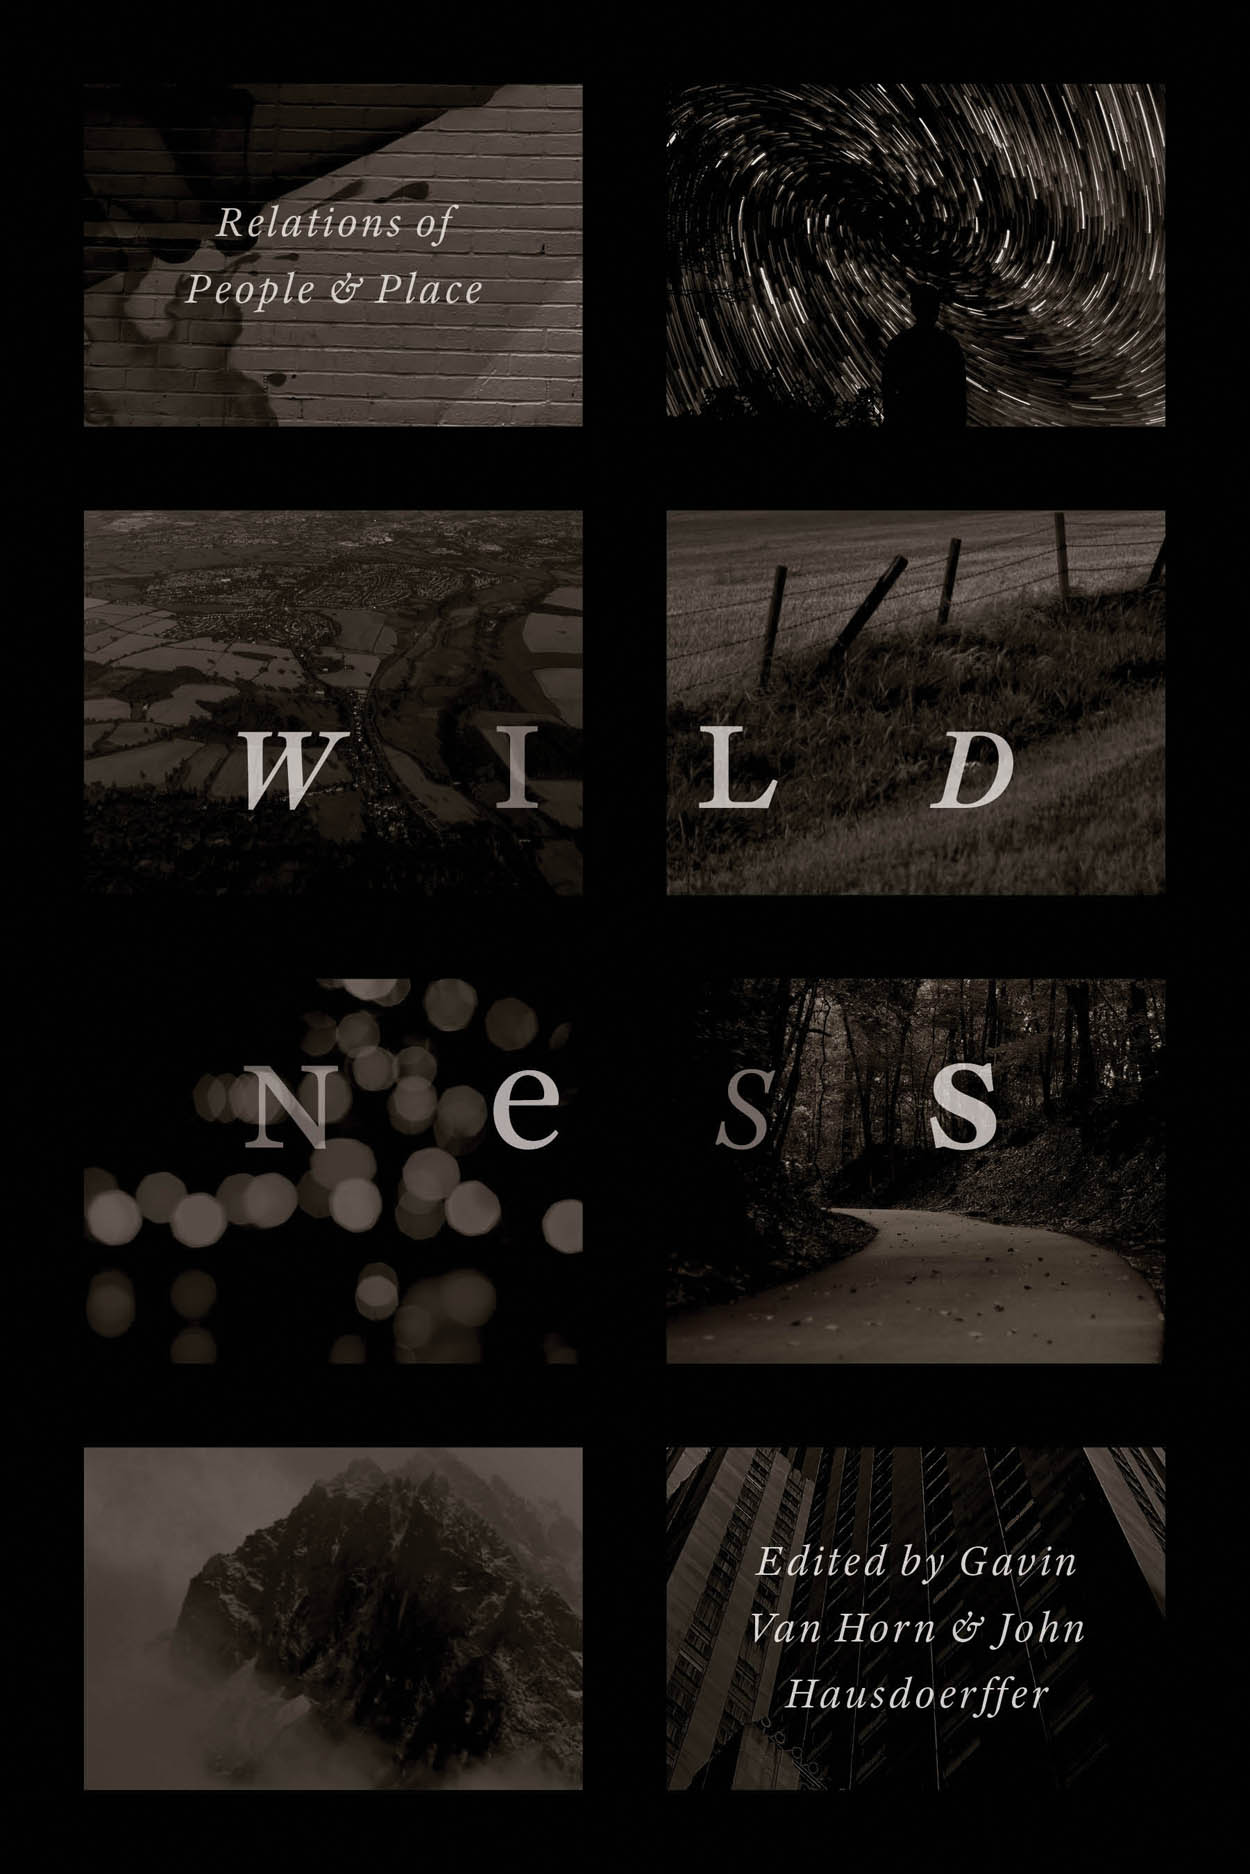 Wildness: Relations of People and Place